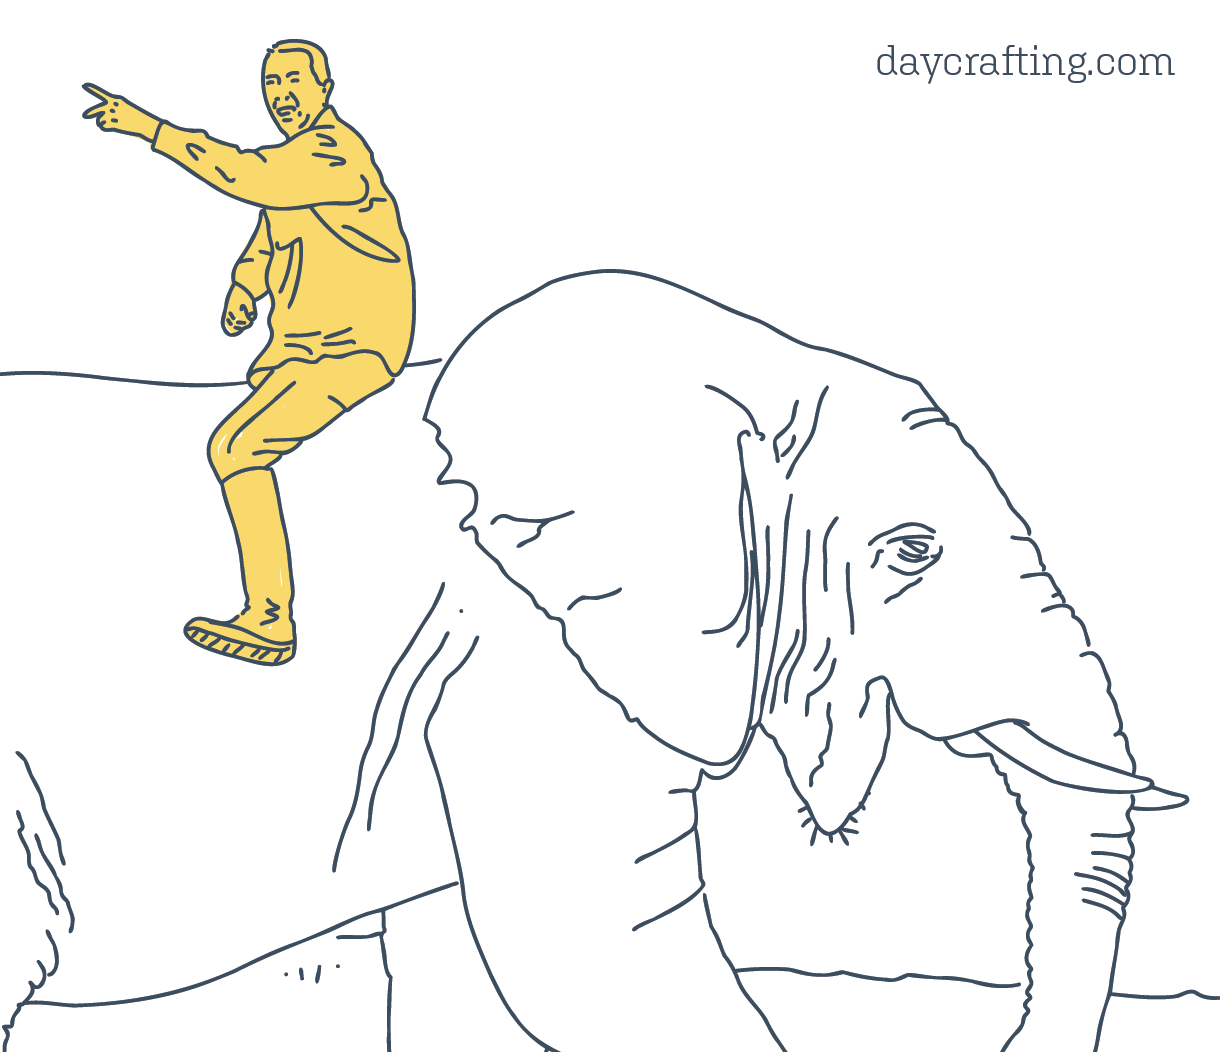 An illustration of a rider on an elephant – an analogy for how the mind is conflicted